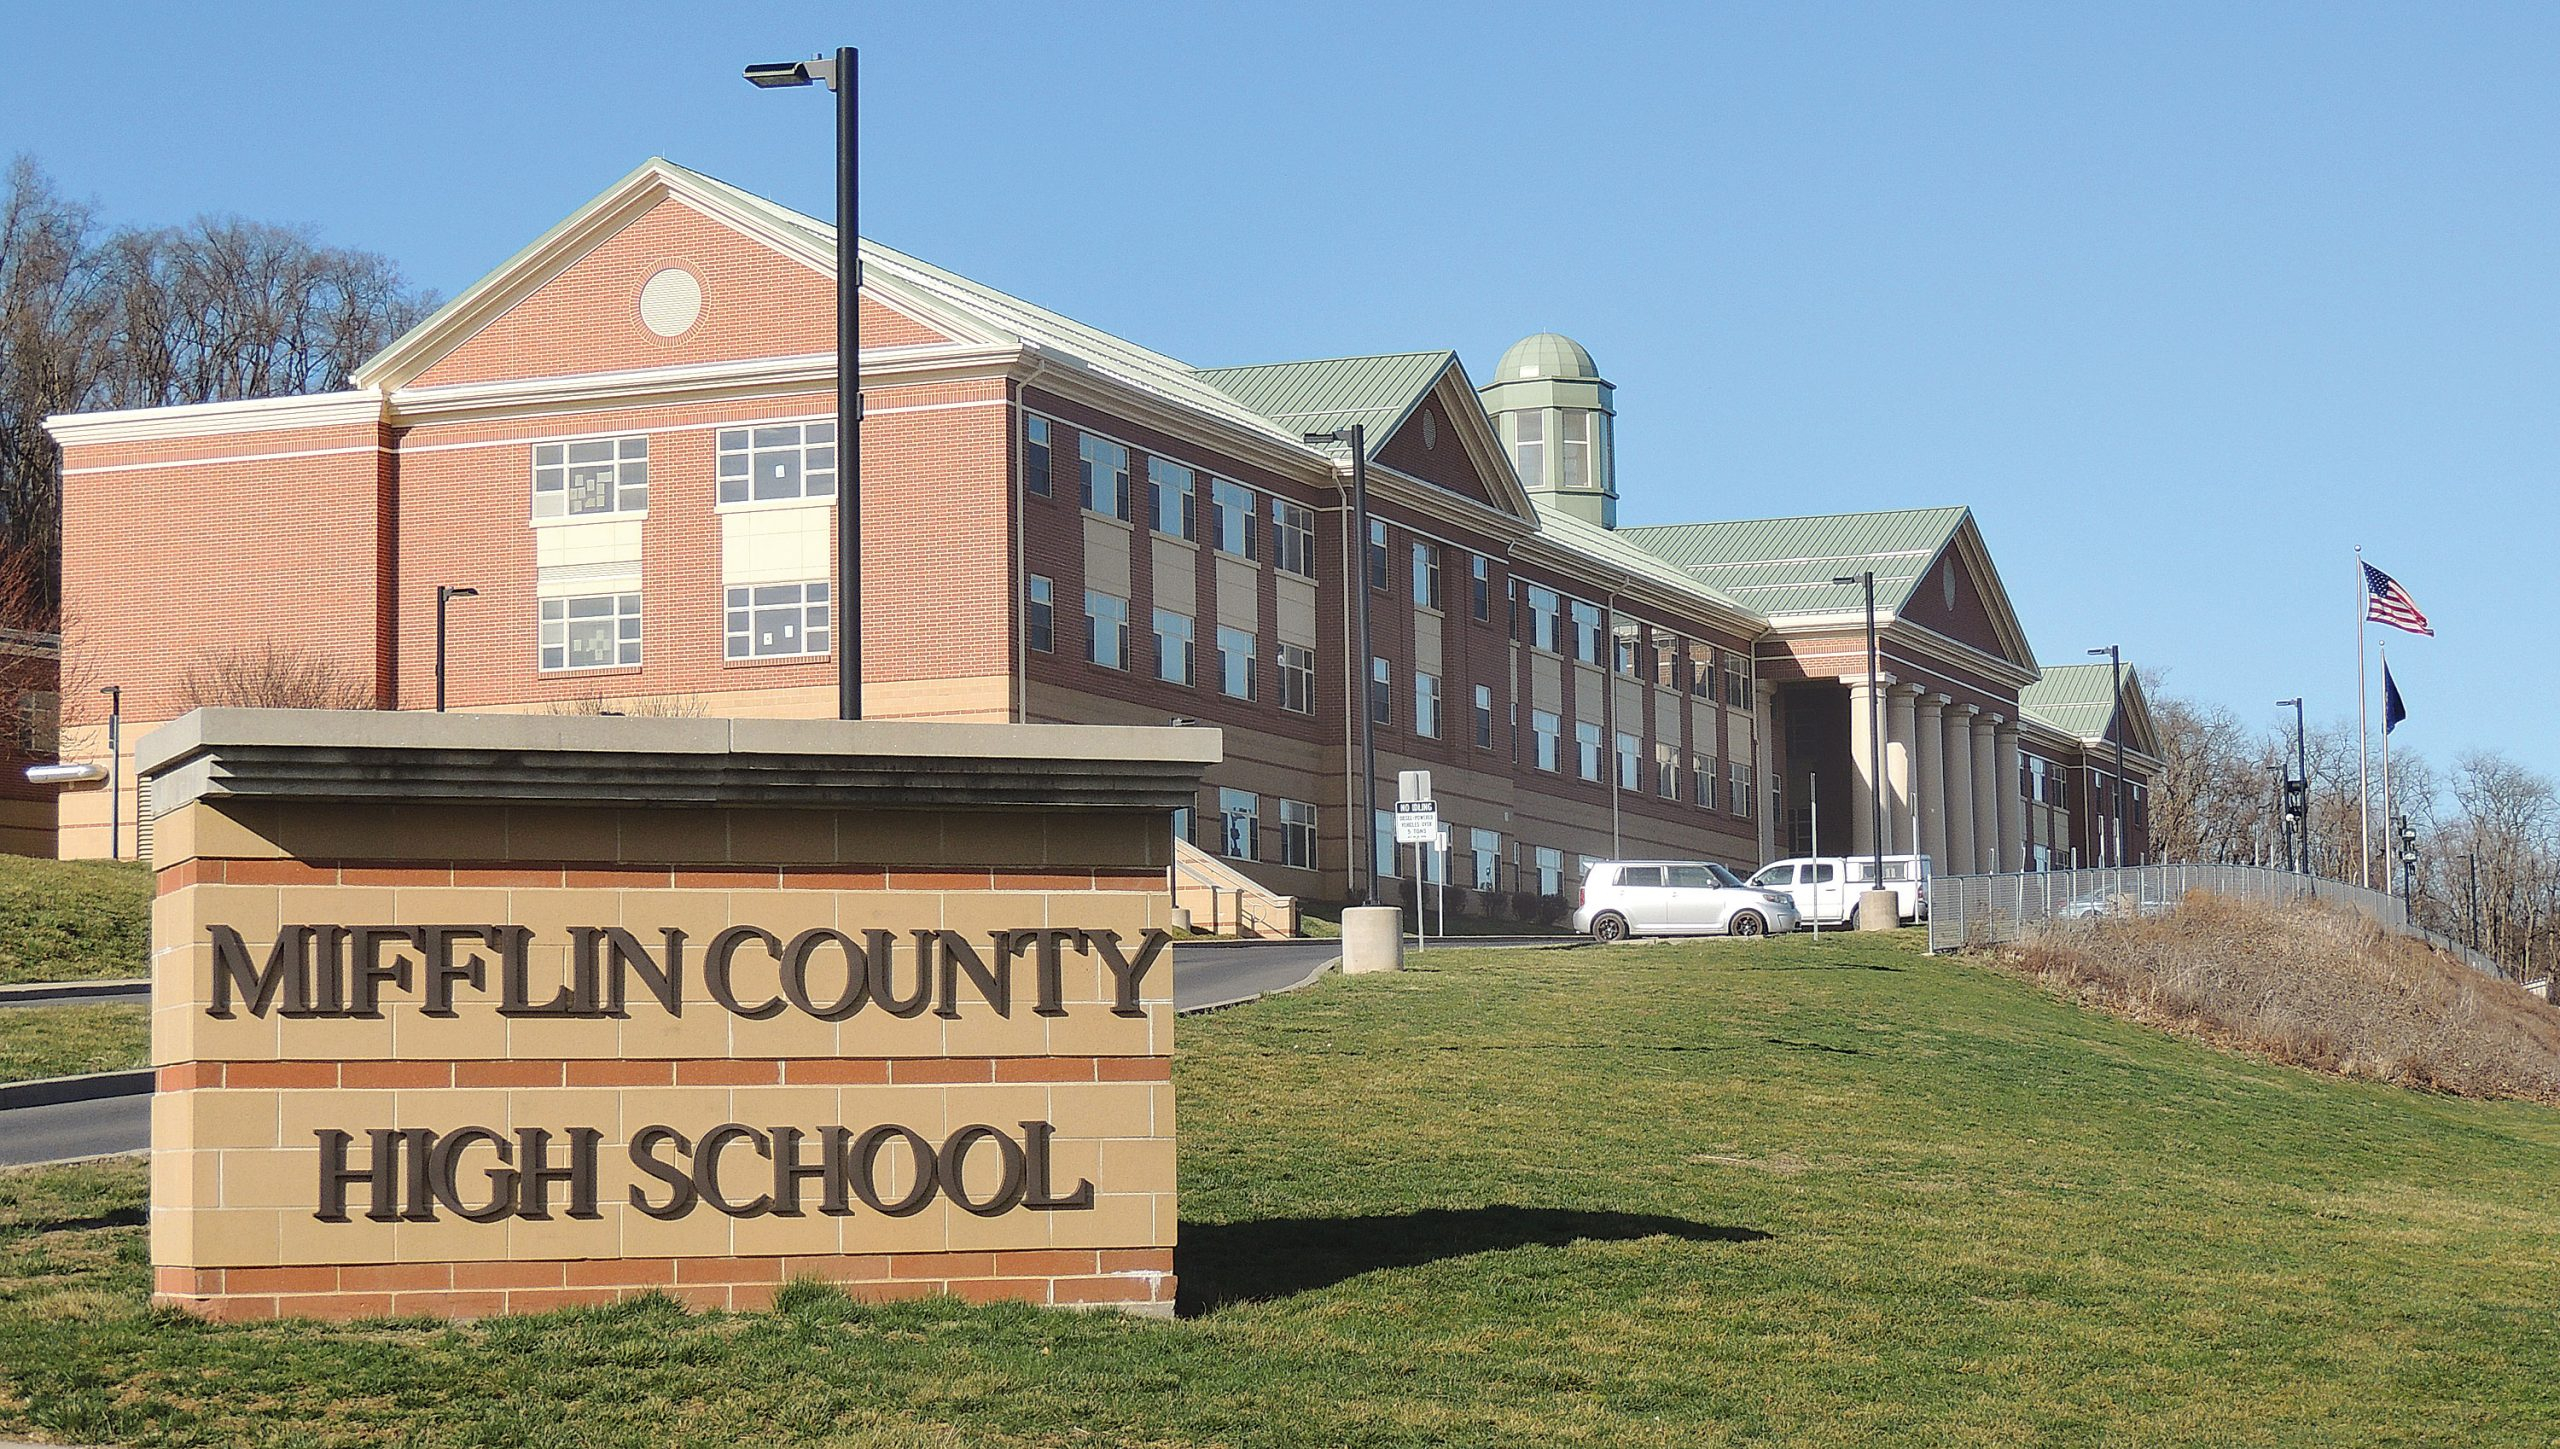 Area Schools Plan For 2 Week Closure | News, Sports, Jobs Inside Mifflin County School Calendar